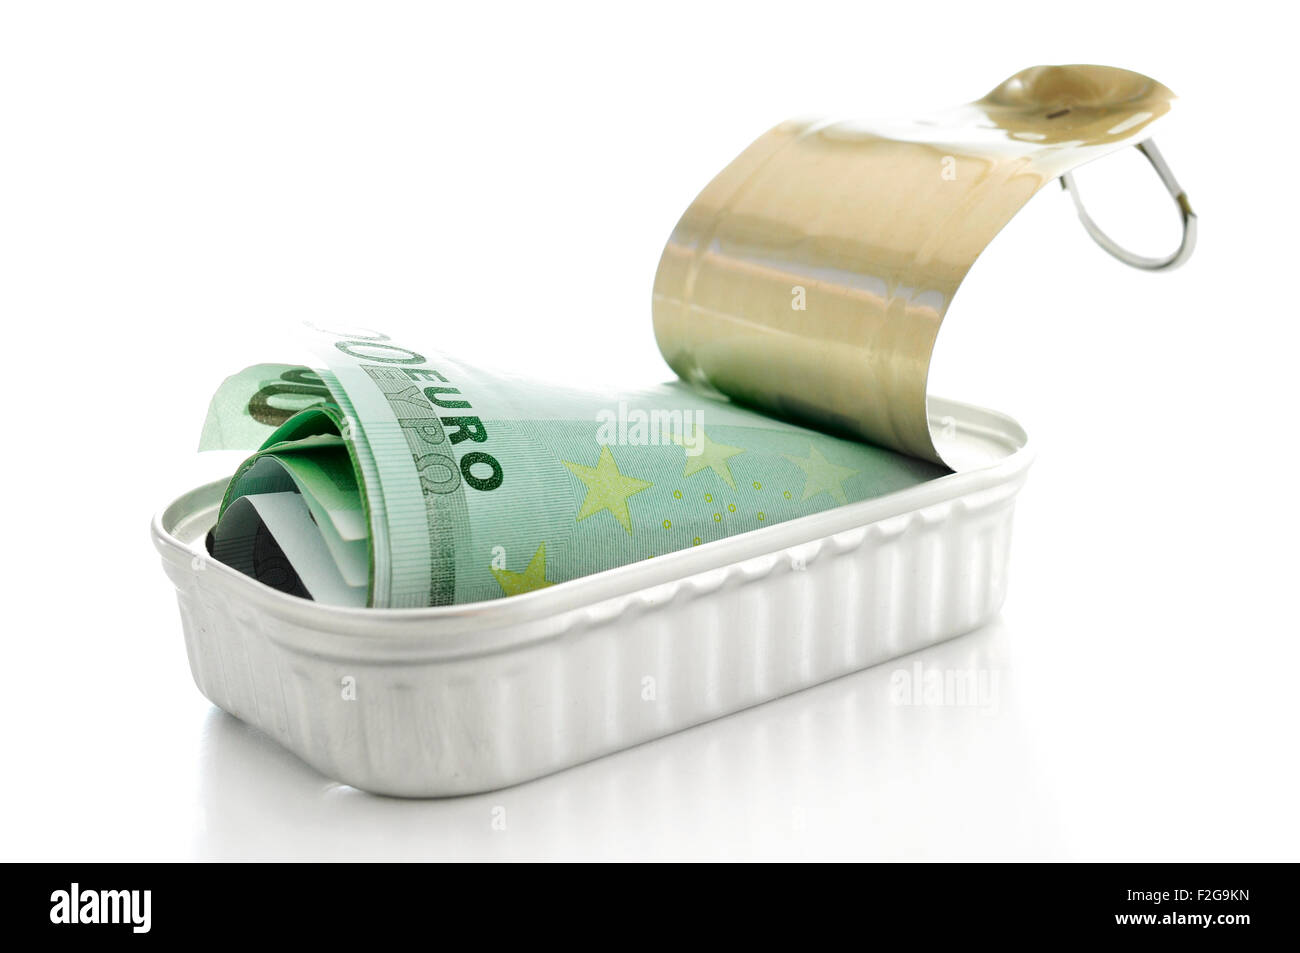 a wad of euro bills in a can on a white background - Stock Image